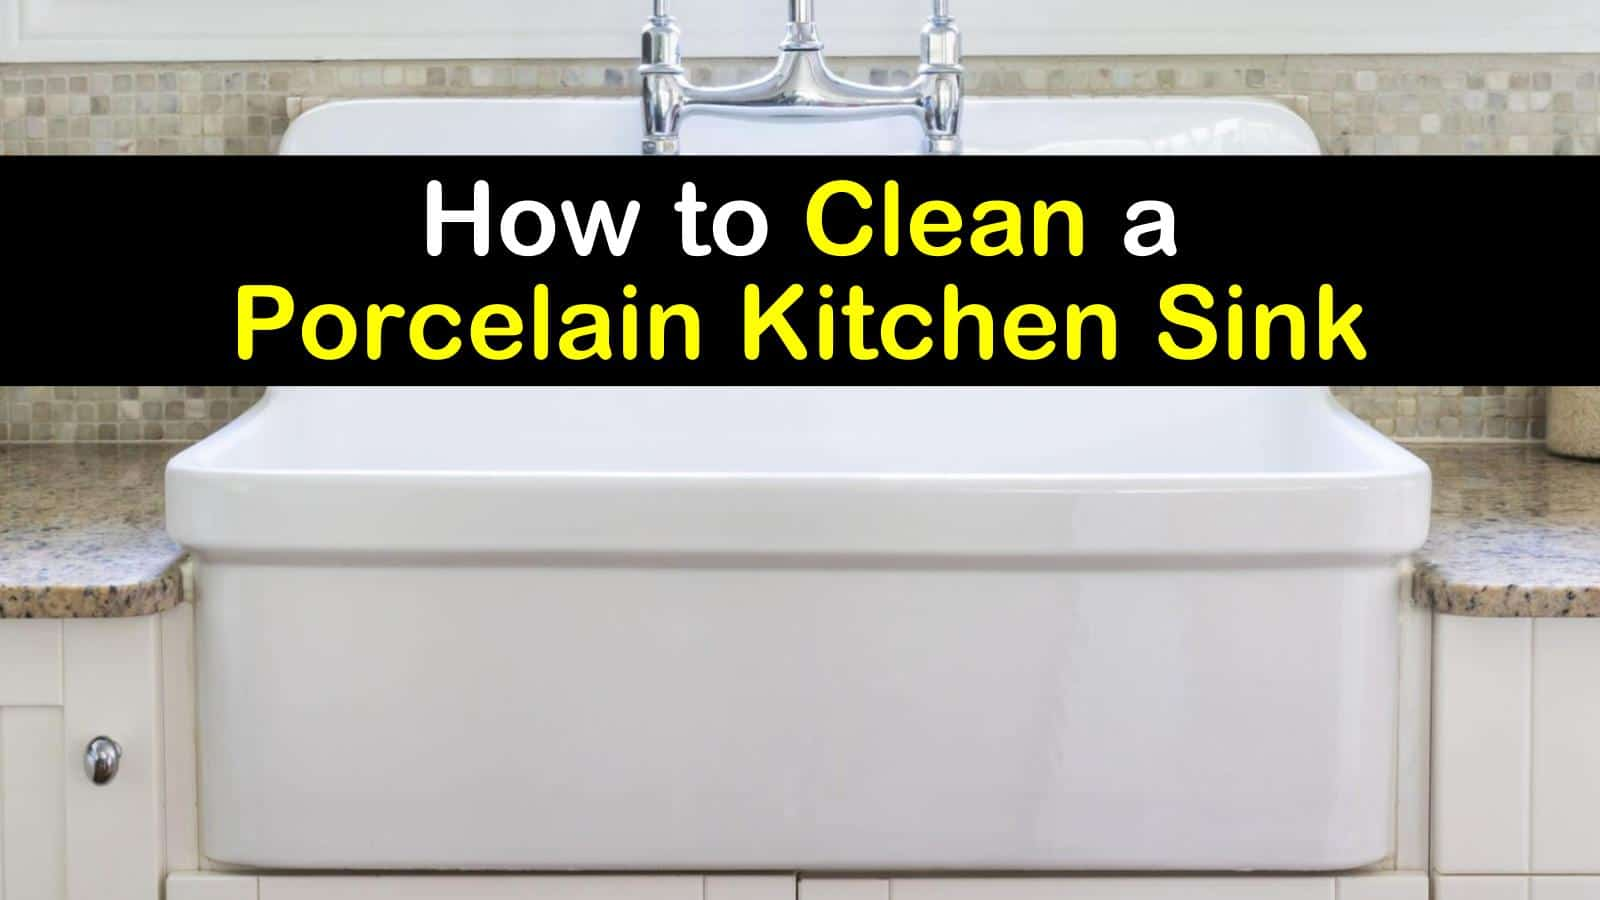 how to clean a porcelain kitchen sink titleimg1